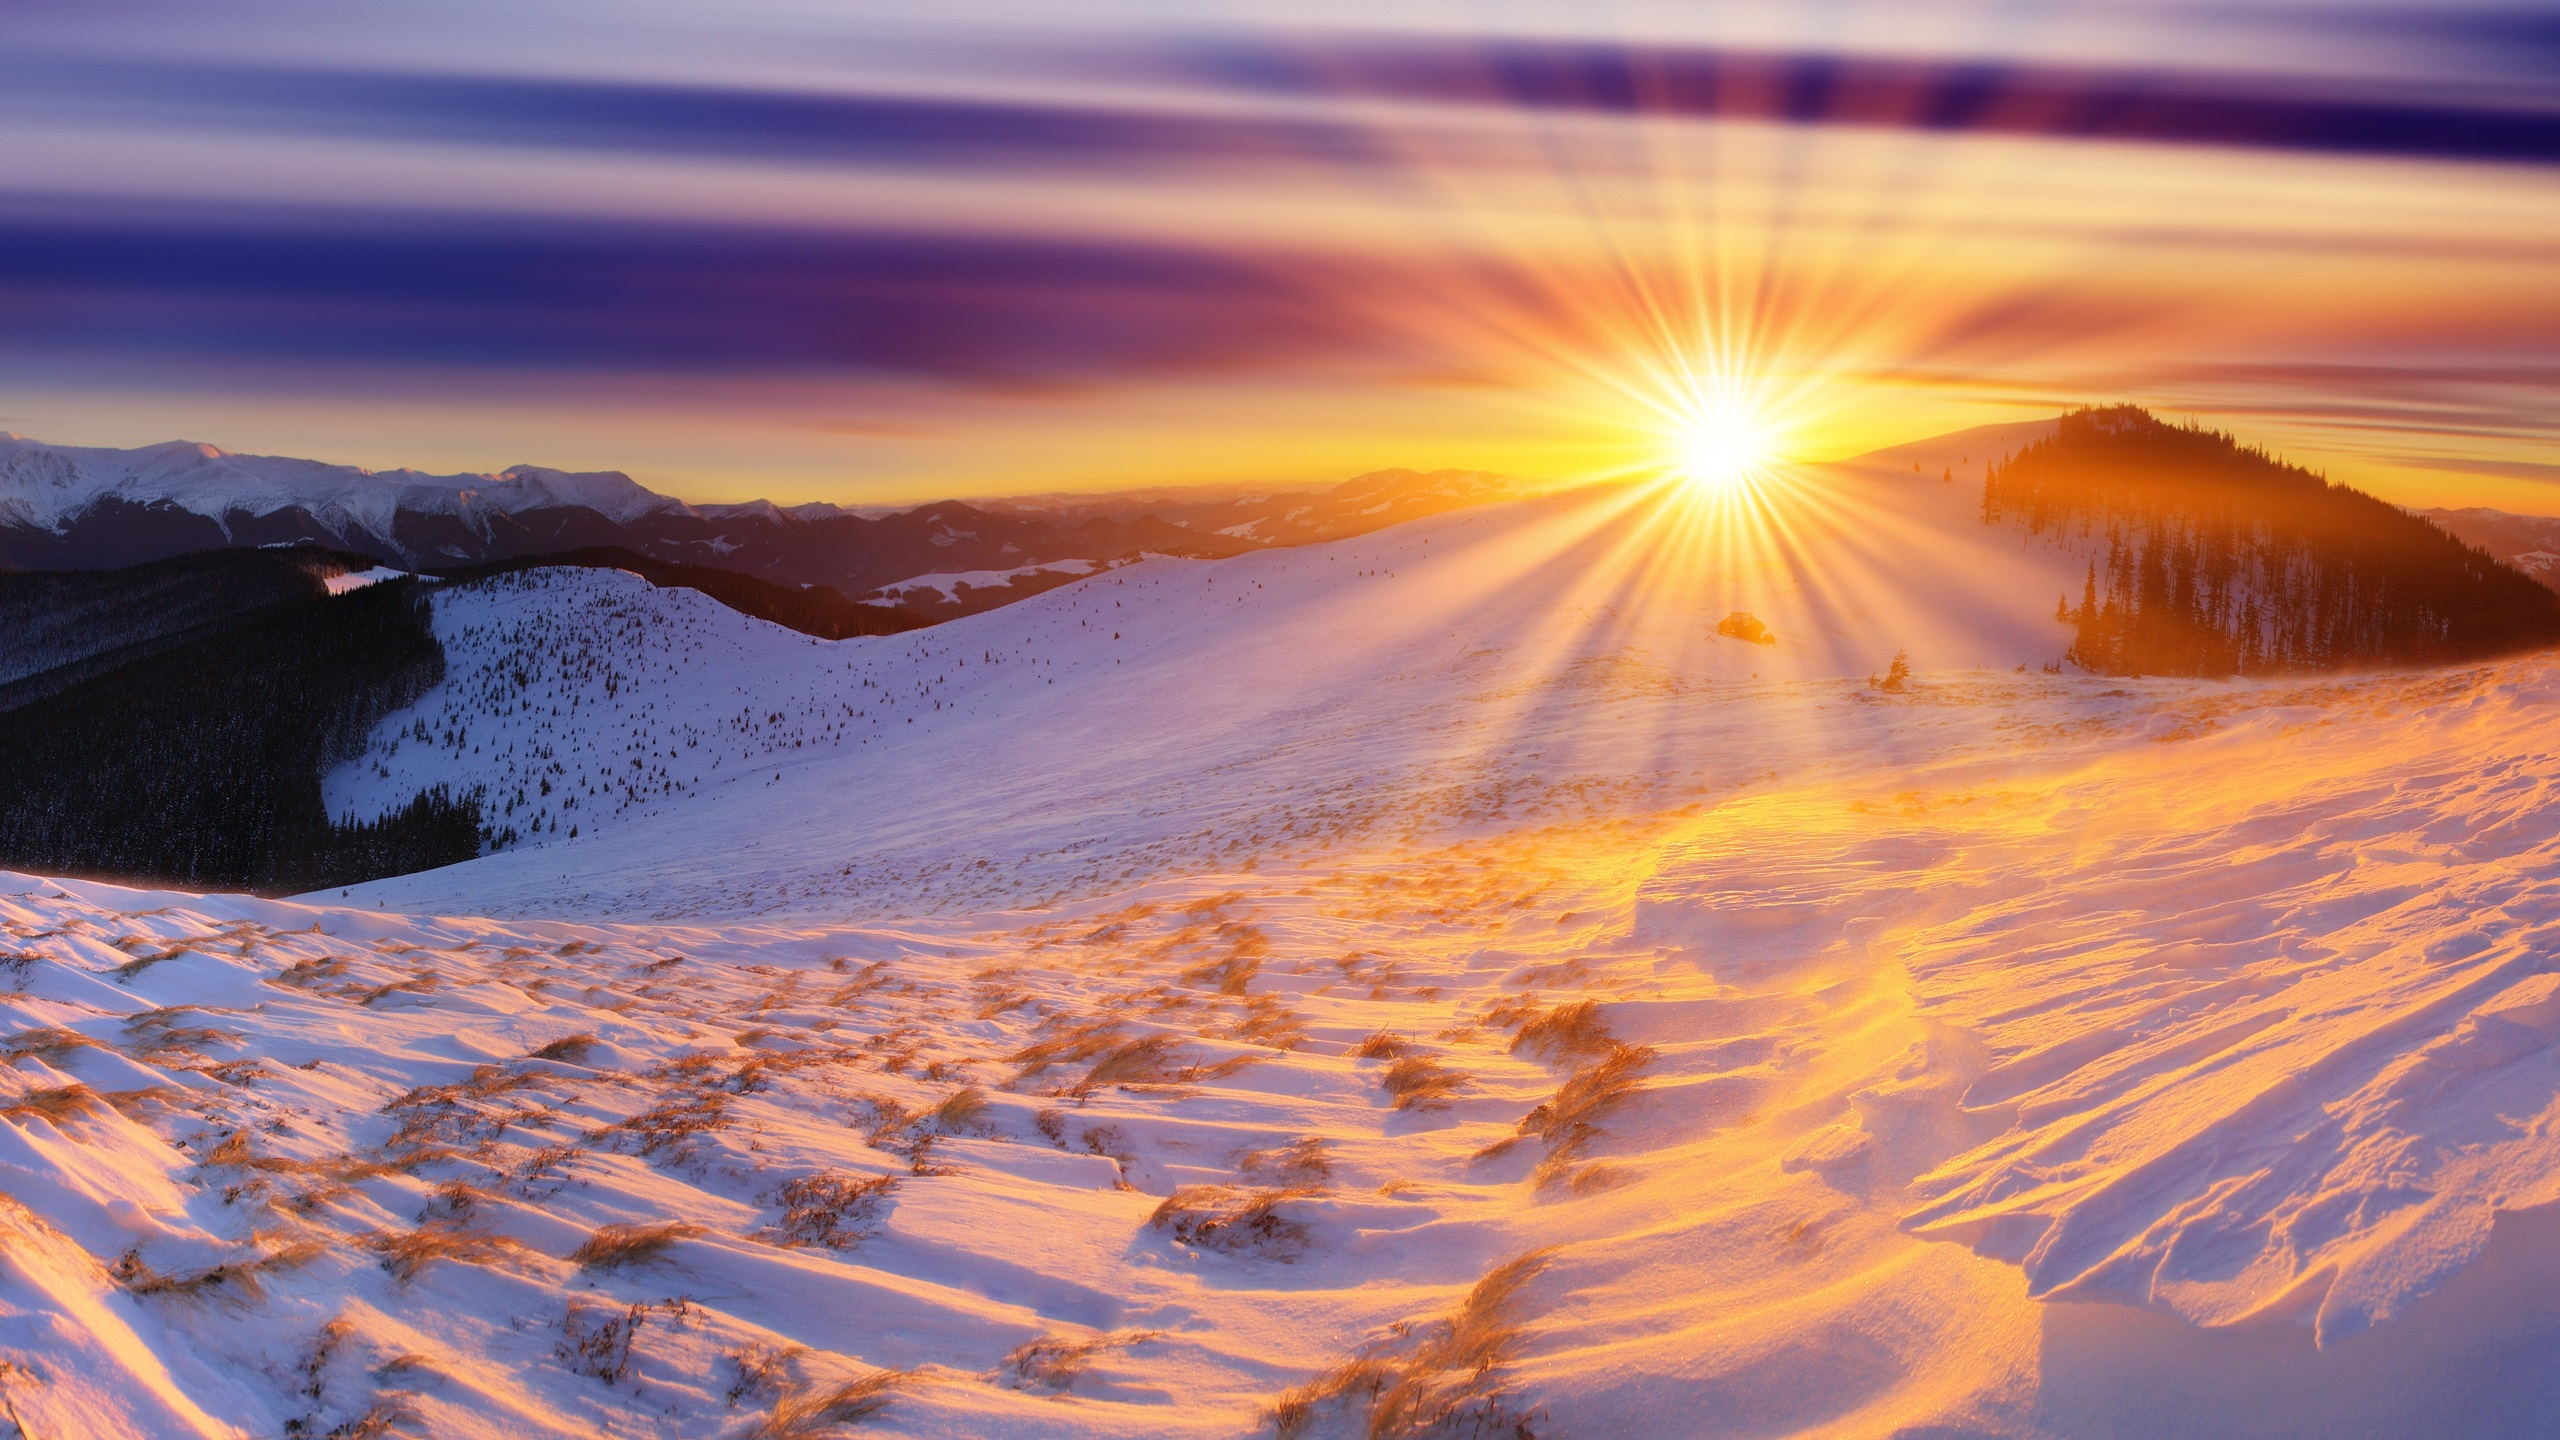 Download Wallpaper 2560x1440 Winter, sunrise, mountains ...